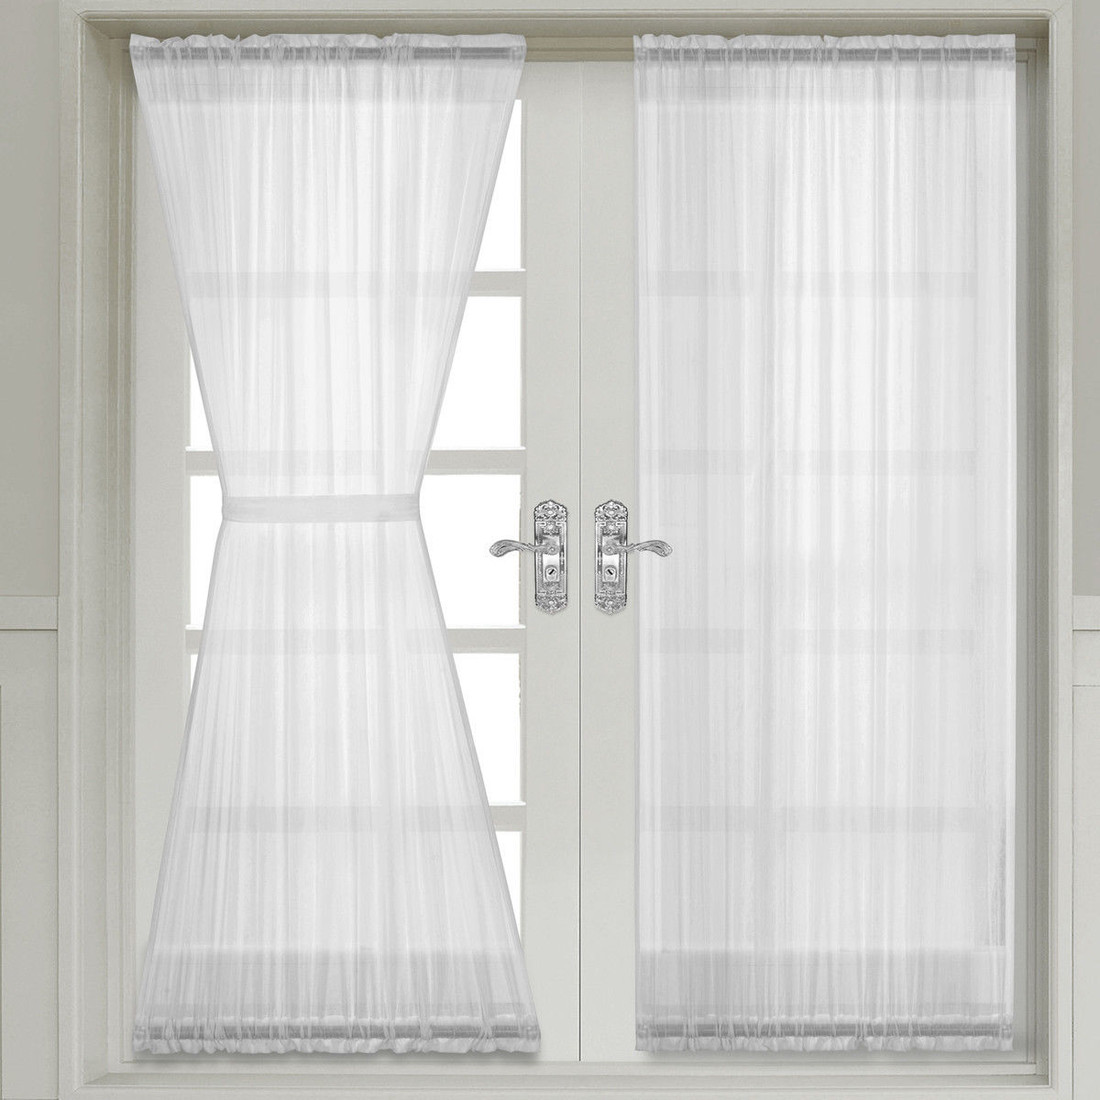 price n by white rod curtain sheer pocket size collection depot decorators semi varies drapes sheers window b the treatments curtains home